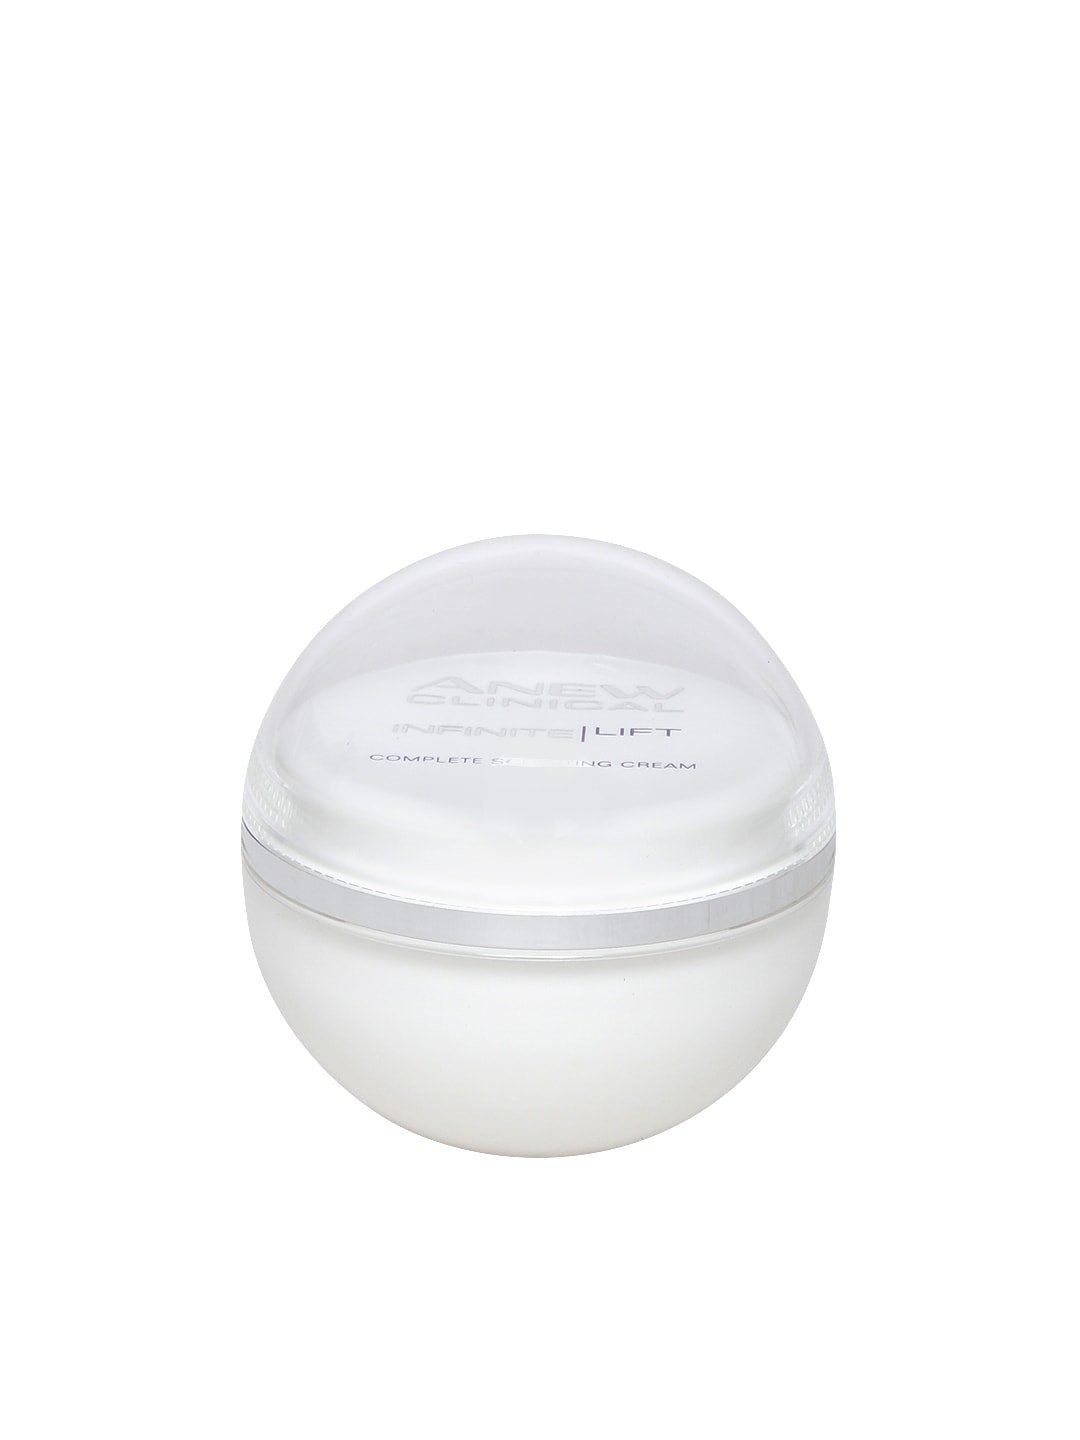 Avon Anew Clinical Infinite Lift Complete Sculpting Cream image